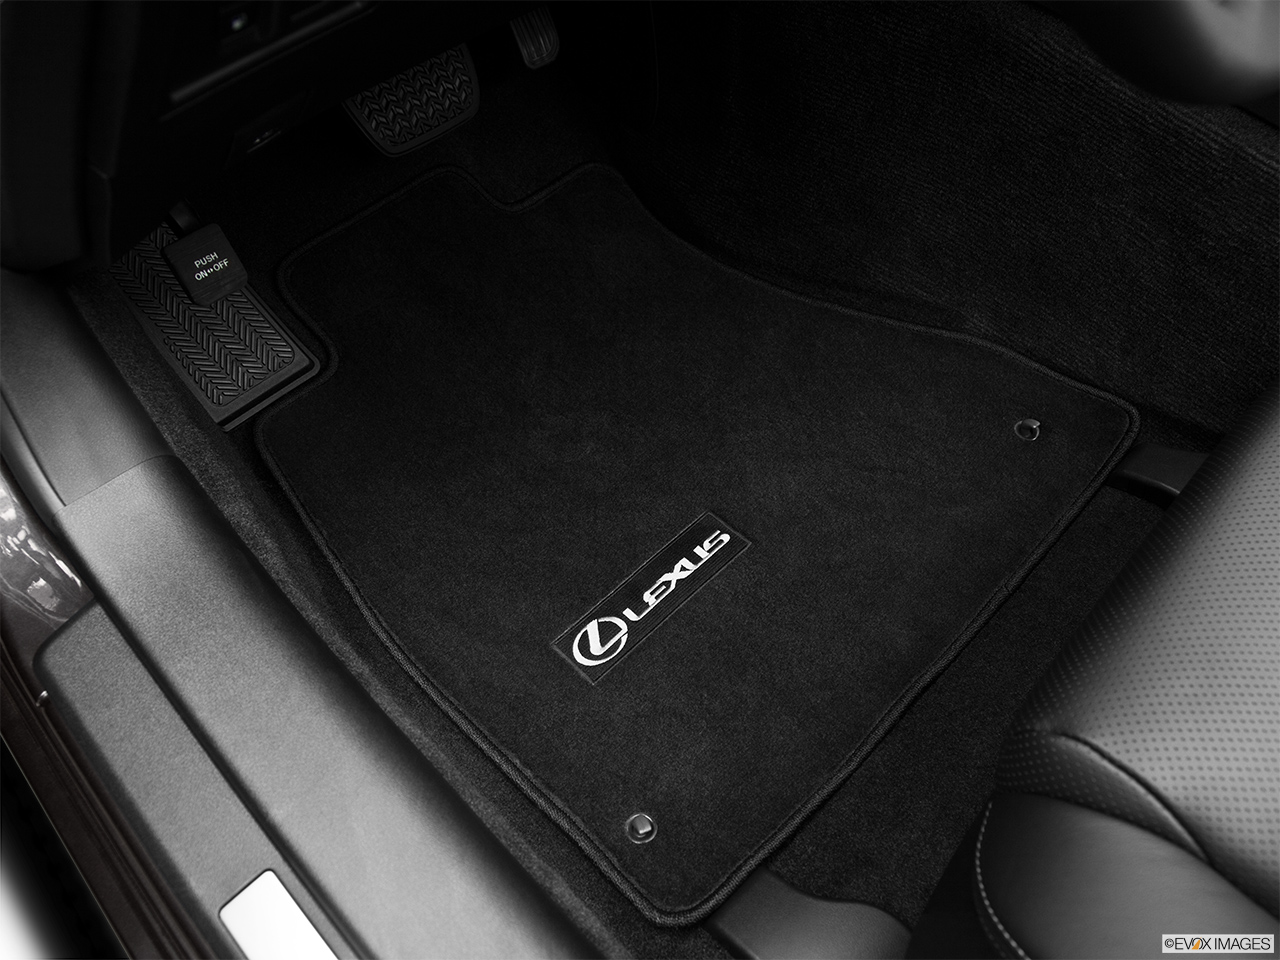 2011 Lexus IS 250C IS250C Driver's floor mat and pedals. Mid-seat level from outside looking in.